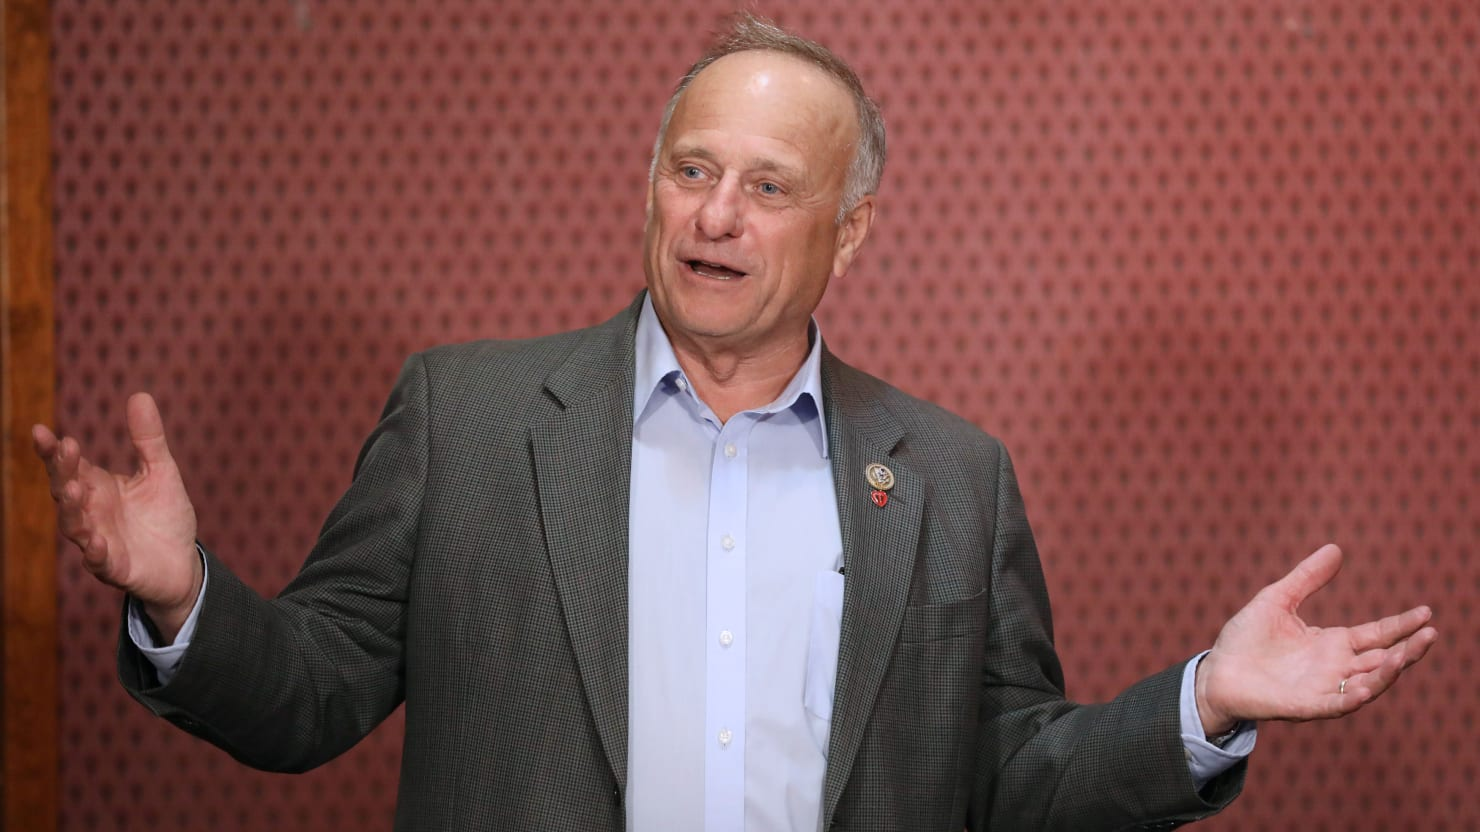 Steve King: I Don't Need to Apologize for White-Supremacy Comments